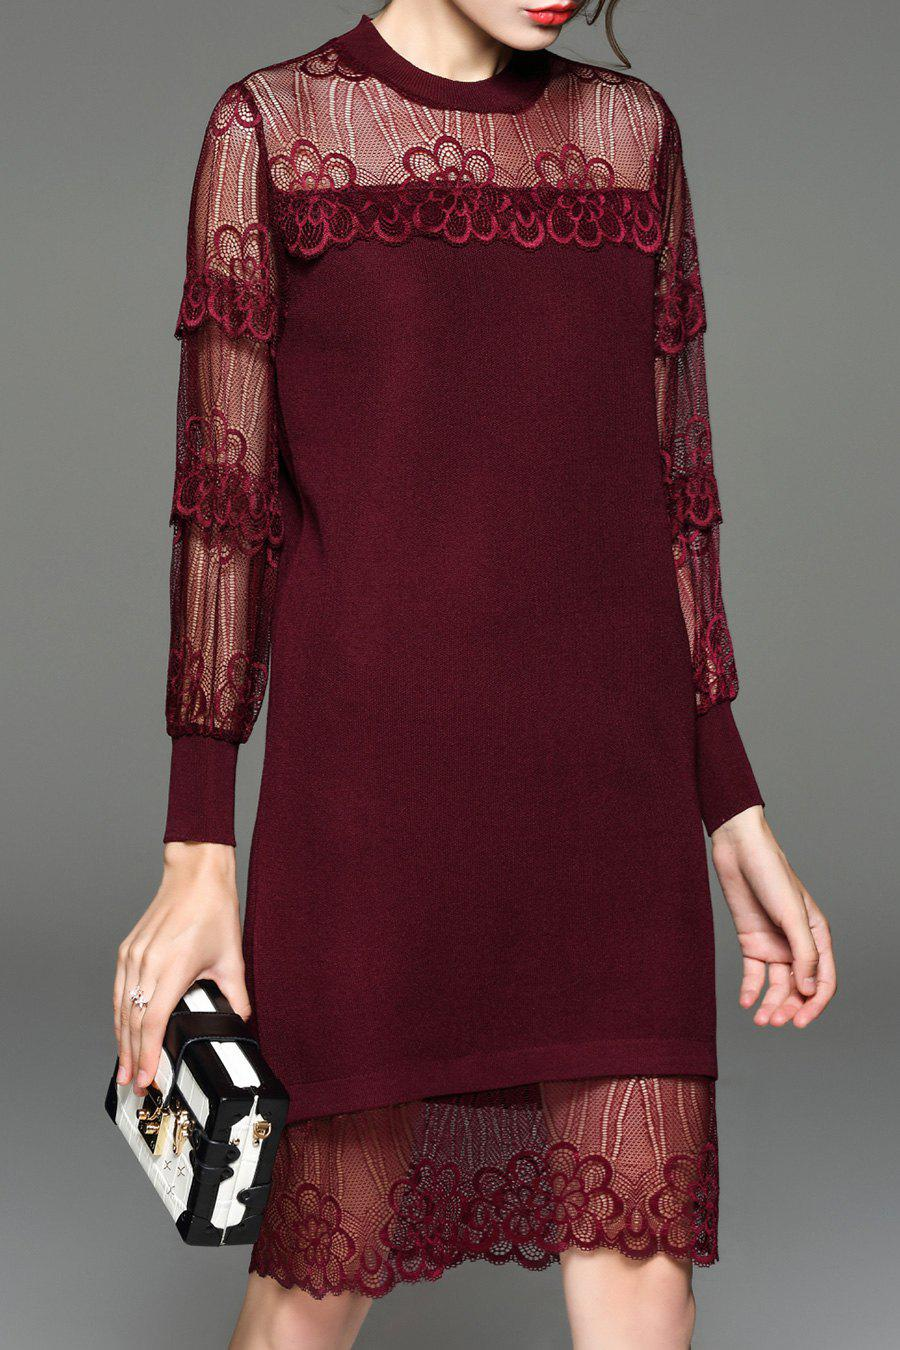 Store Lace Sheer Long Sleeve Shift Holiday Dress